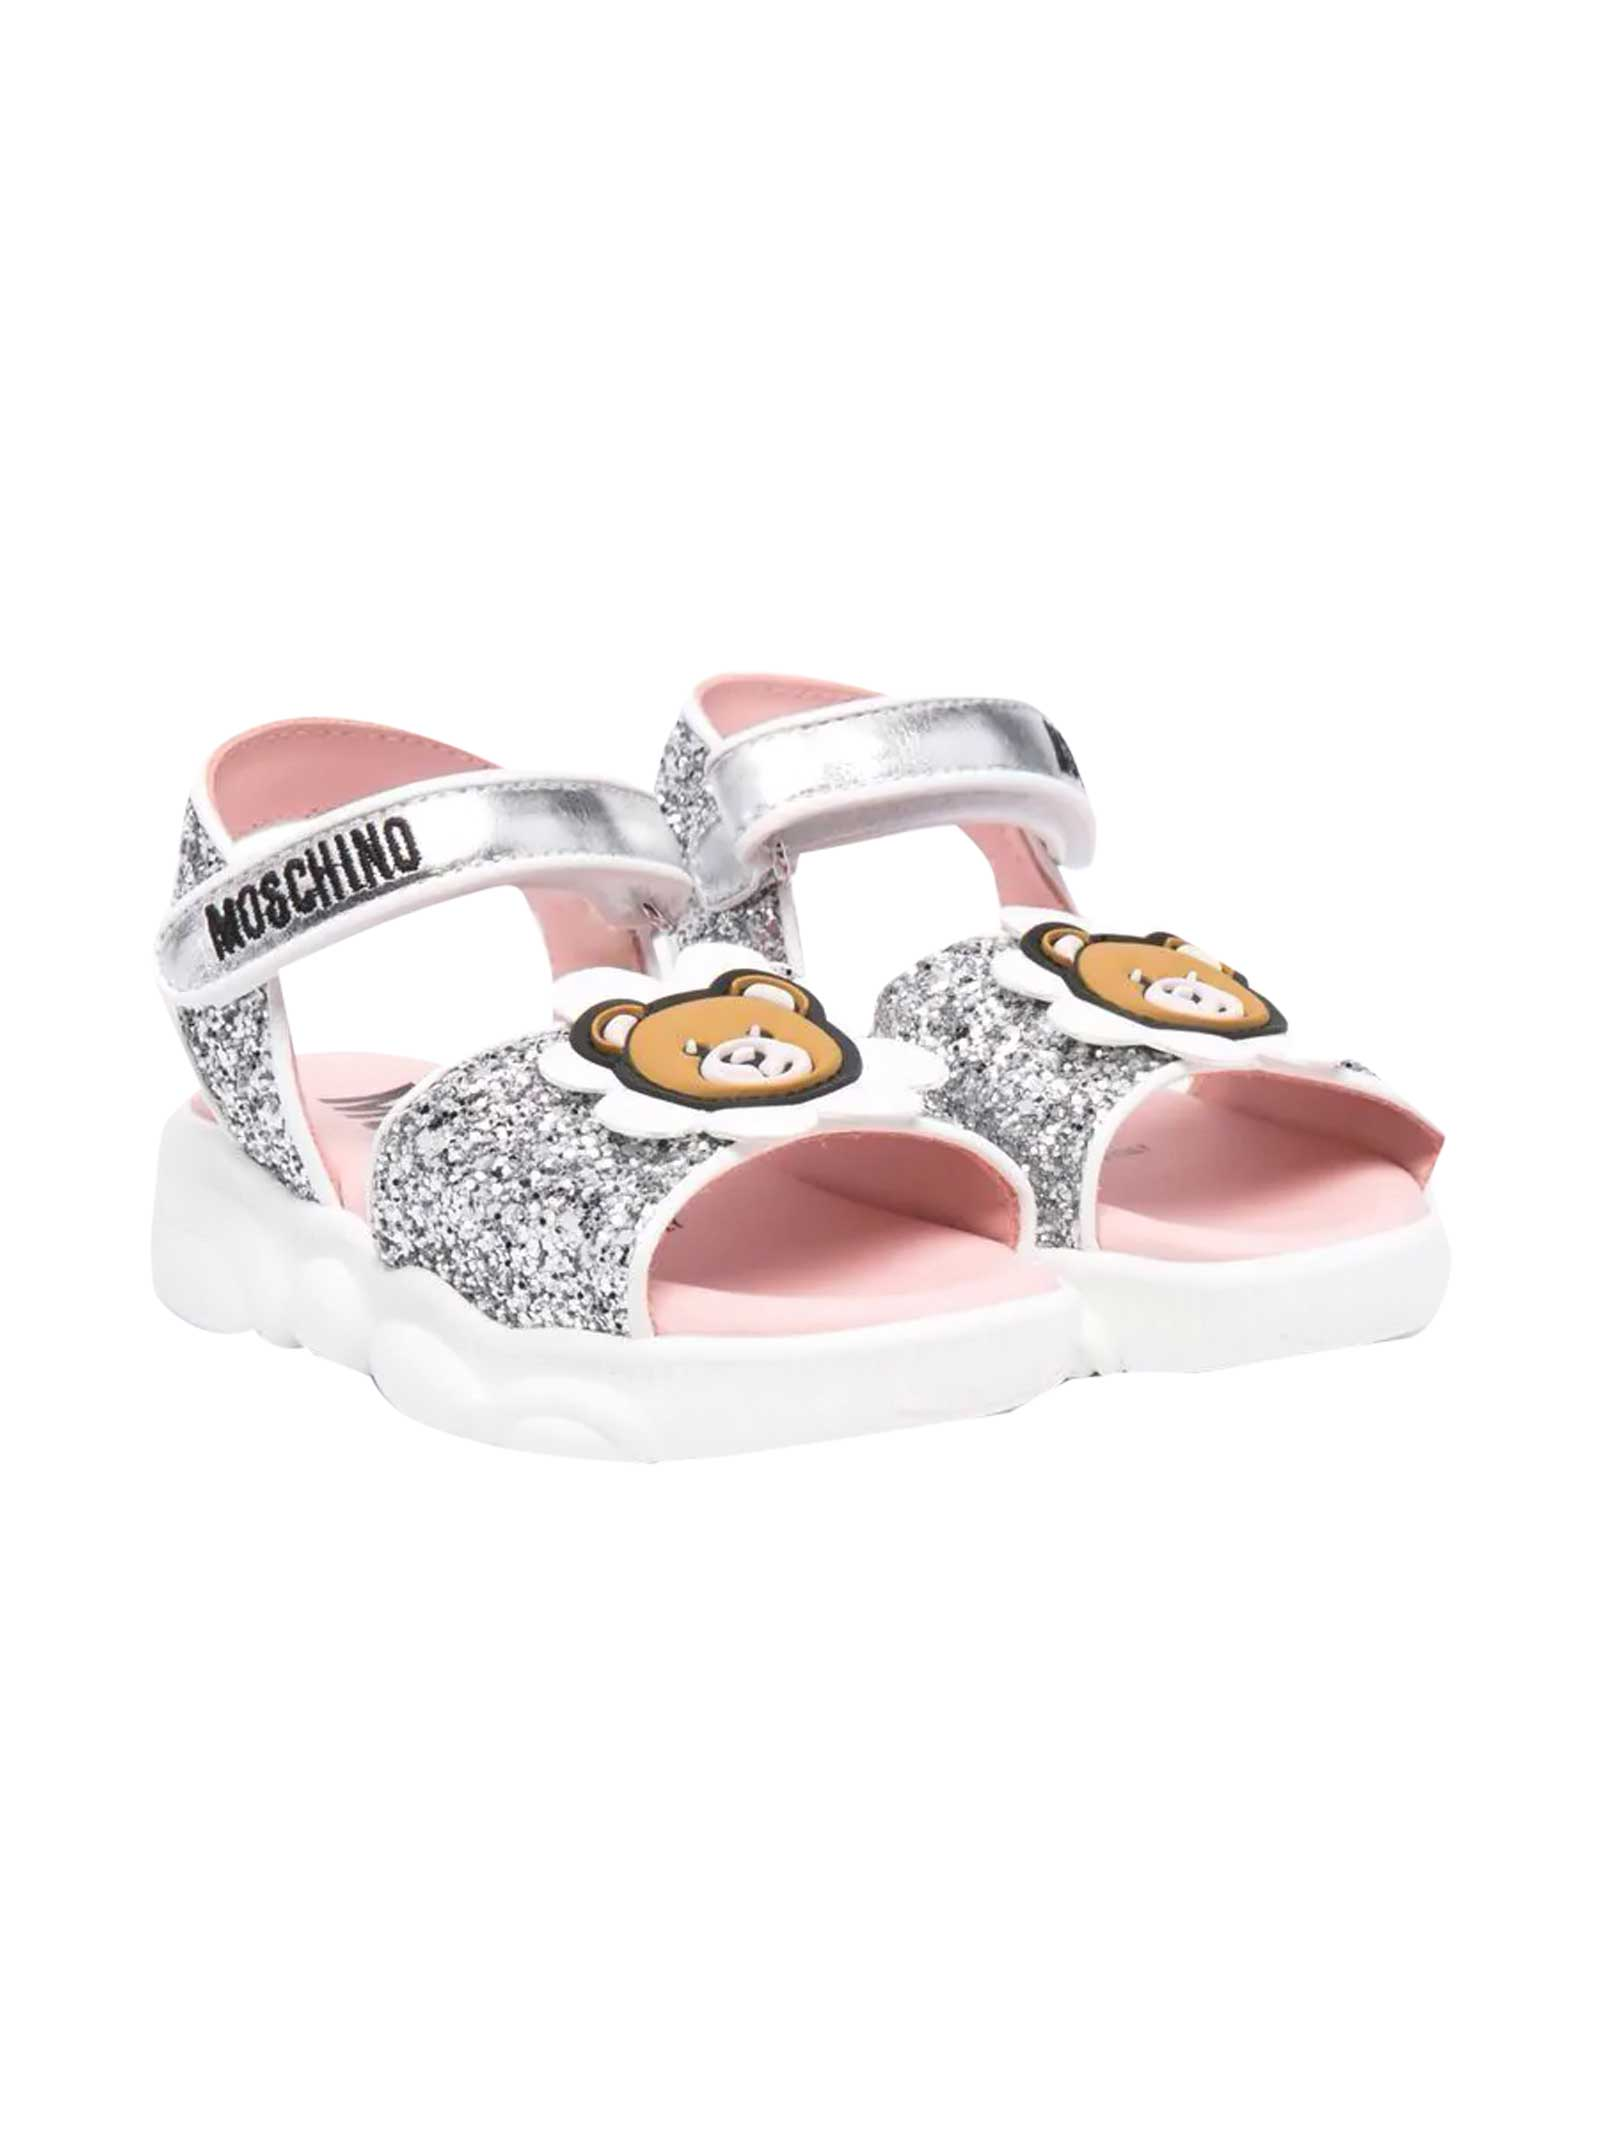 Moschino SANDALS WITH TEDDY BEAR APPLICATION